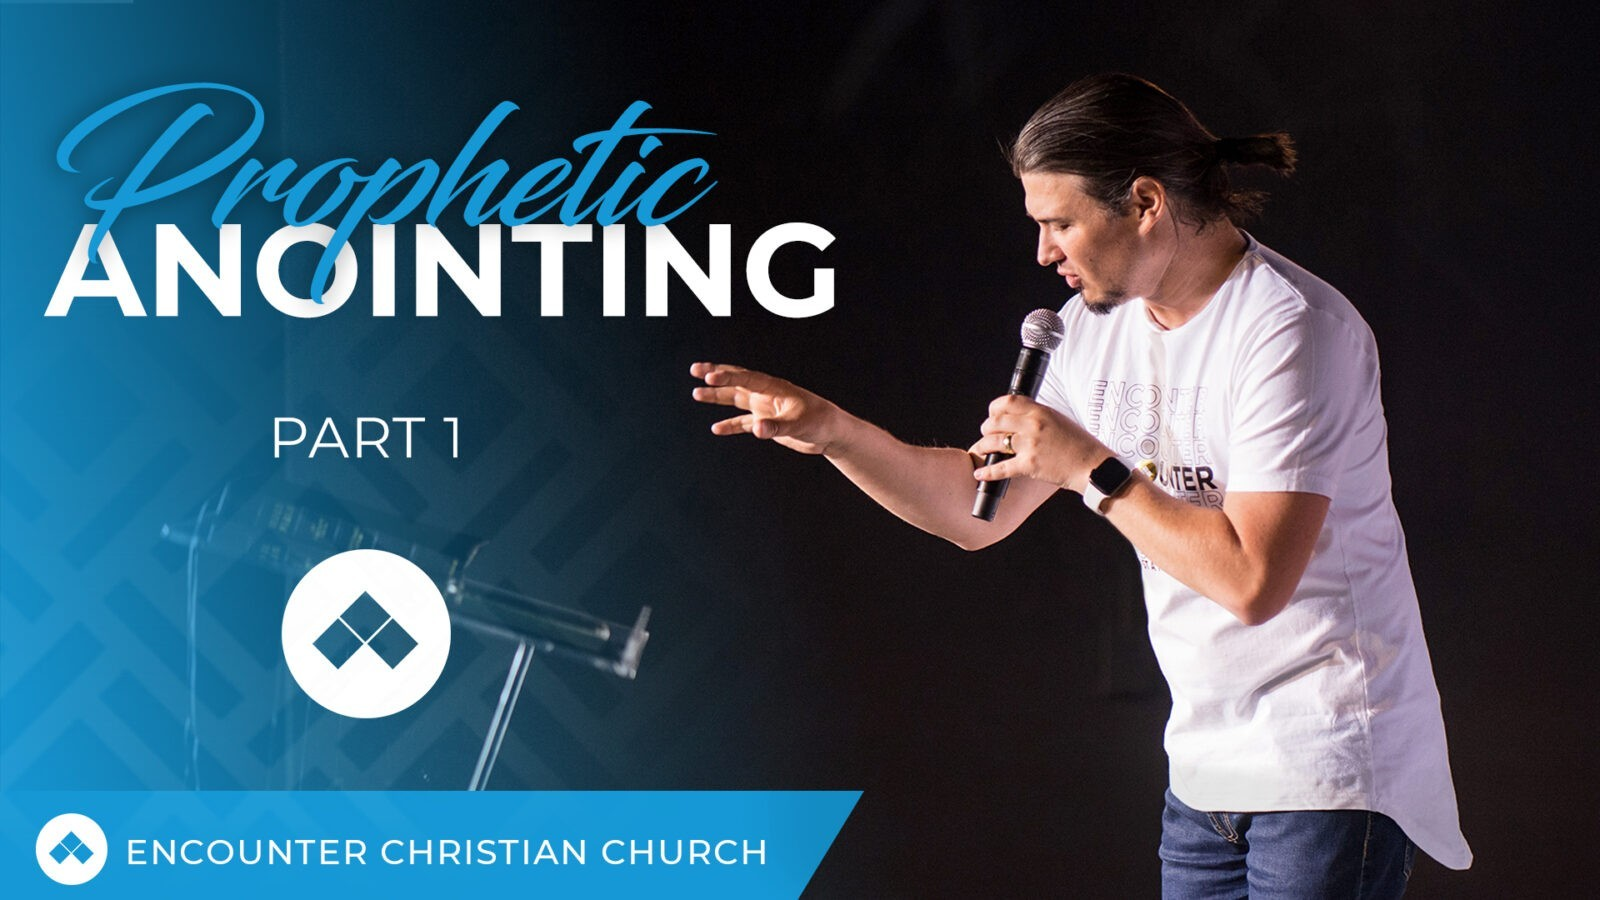 Prophetic Anointing Part 1